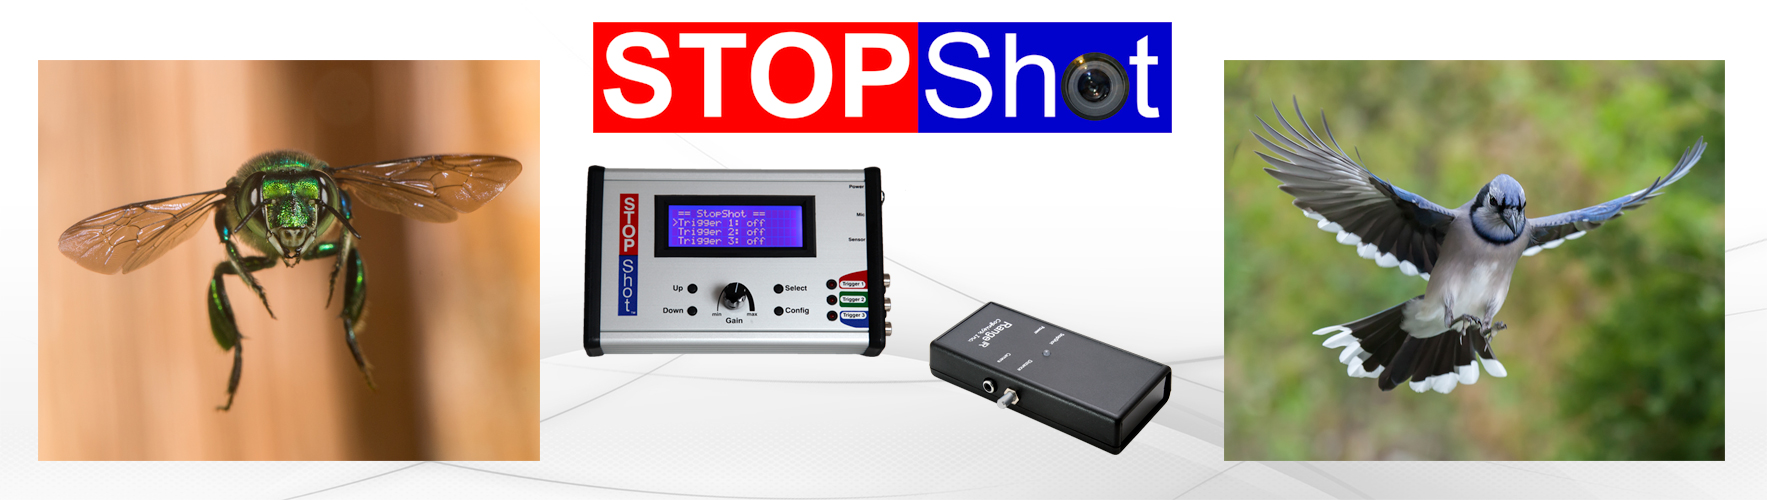 Use StopShot for High Speed Capture